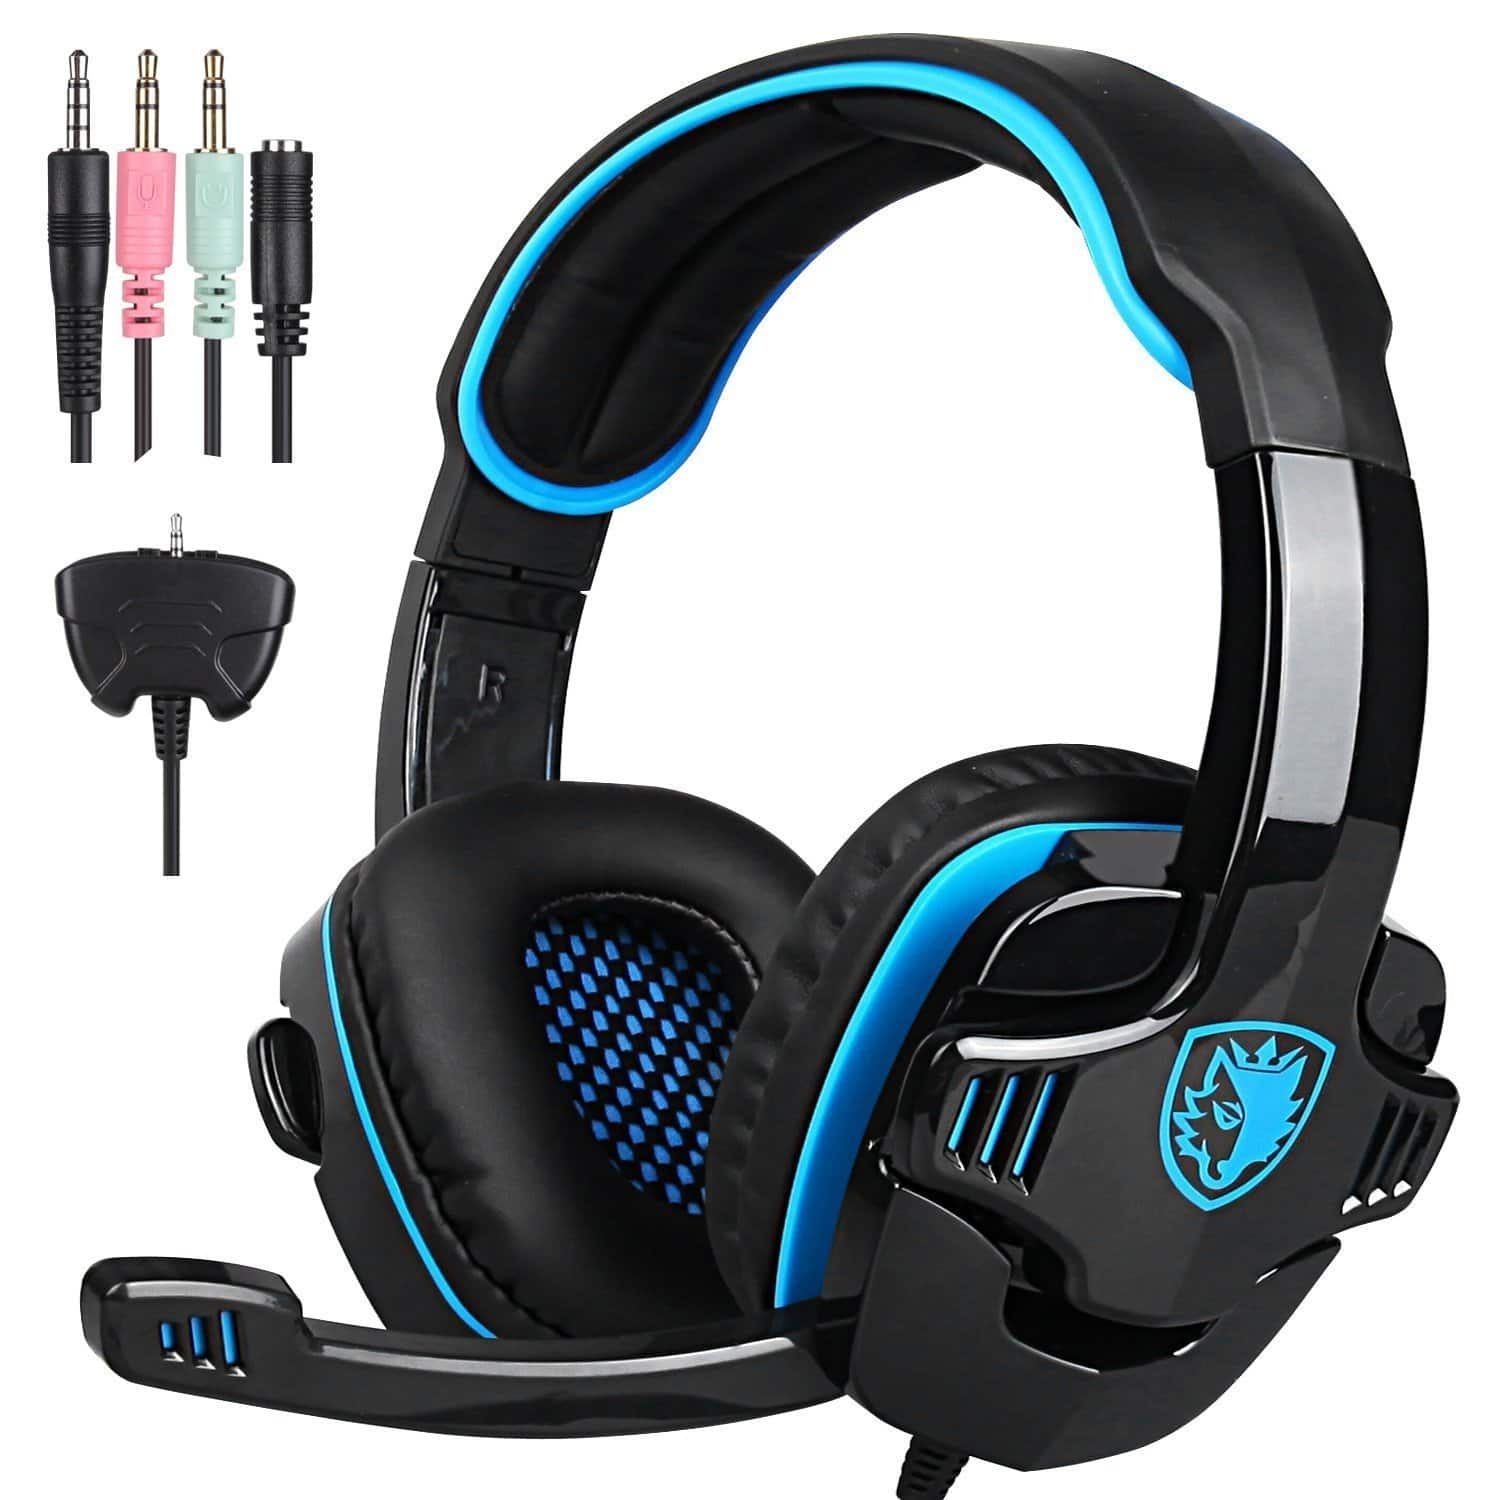 SADES Gaming Headset Headphone For PS4/PC/Laptop/Xbox 360 with Microphone SA-708GT $17.24